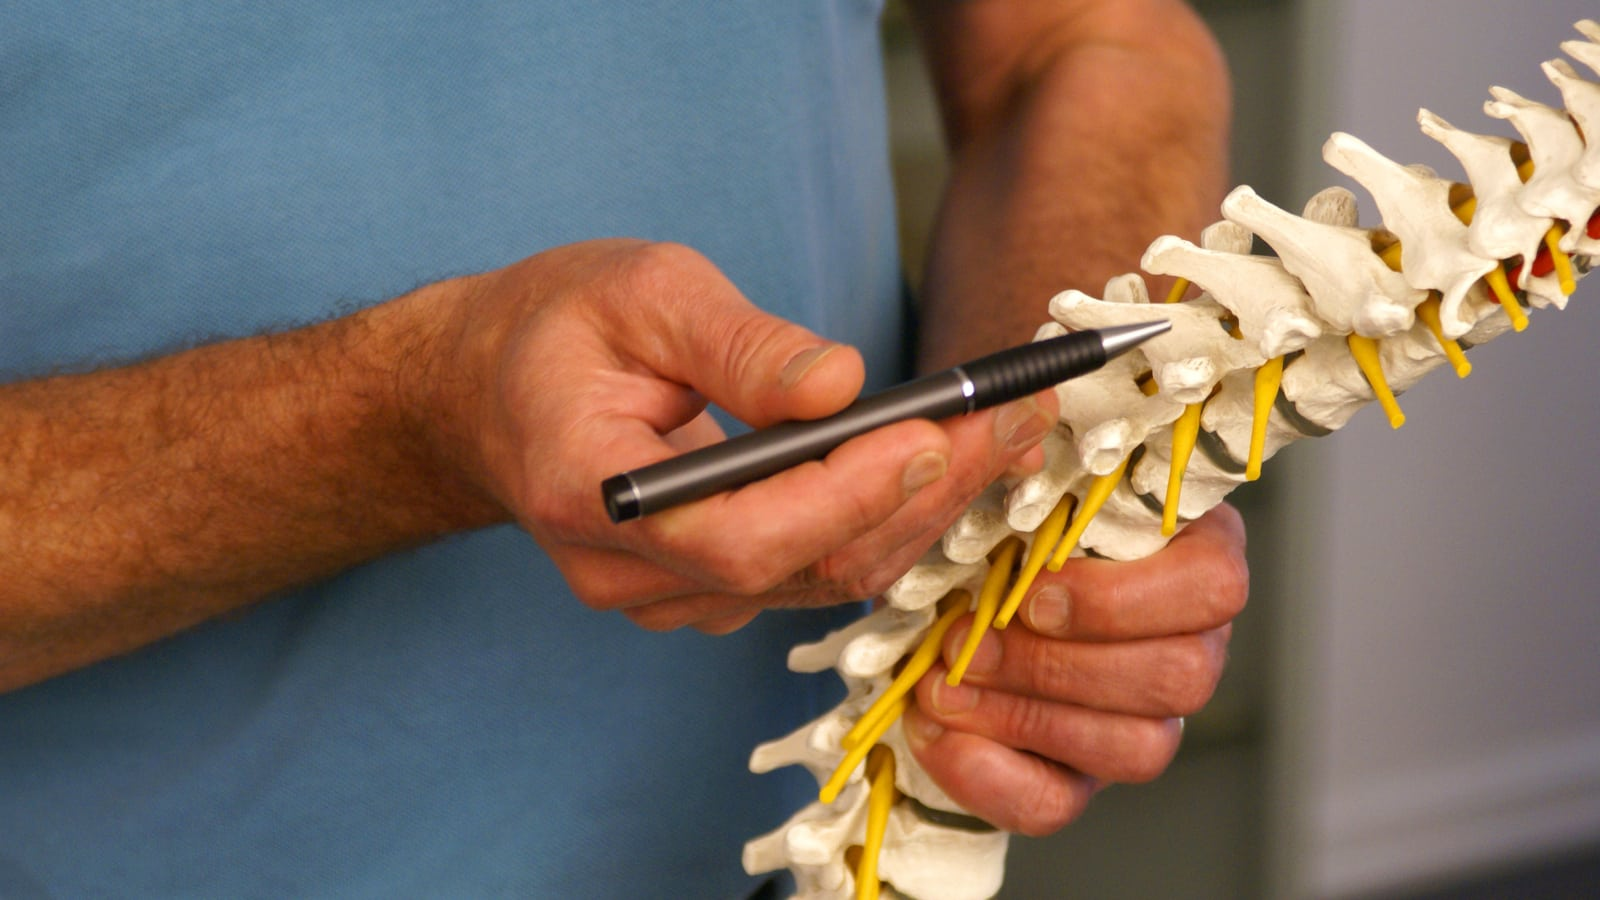 Professional demonstrating a spinal cord injury.